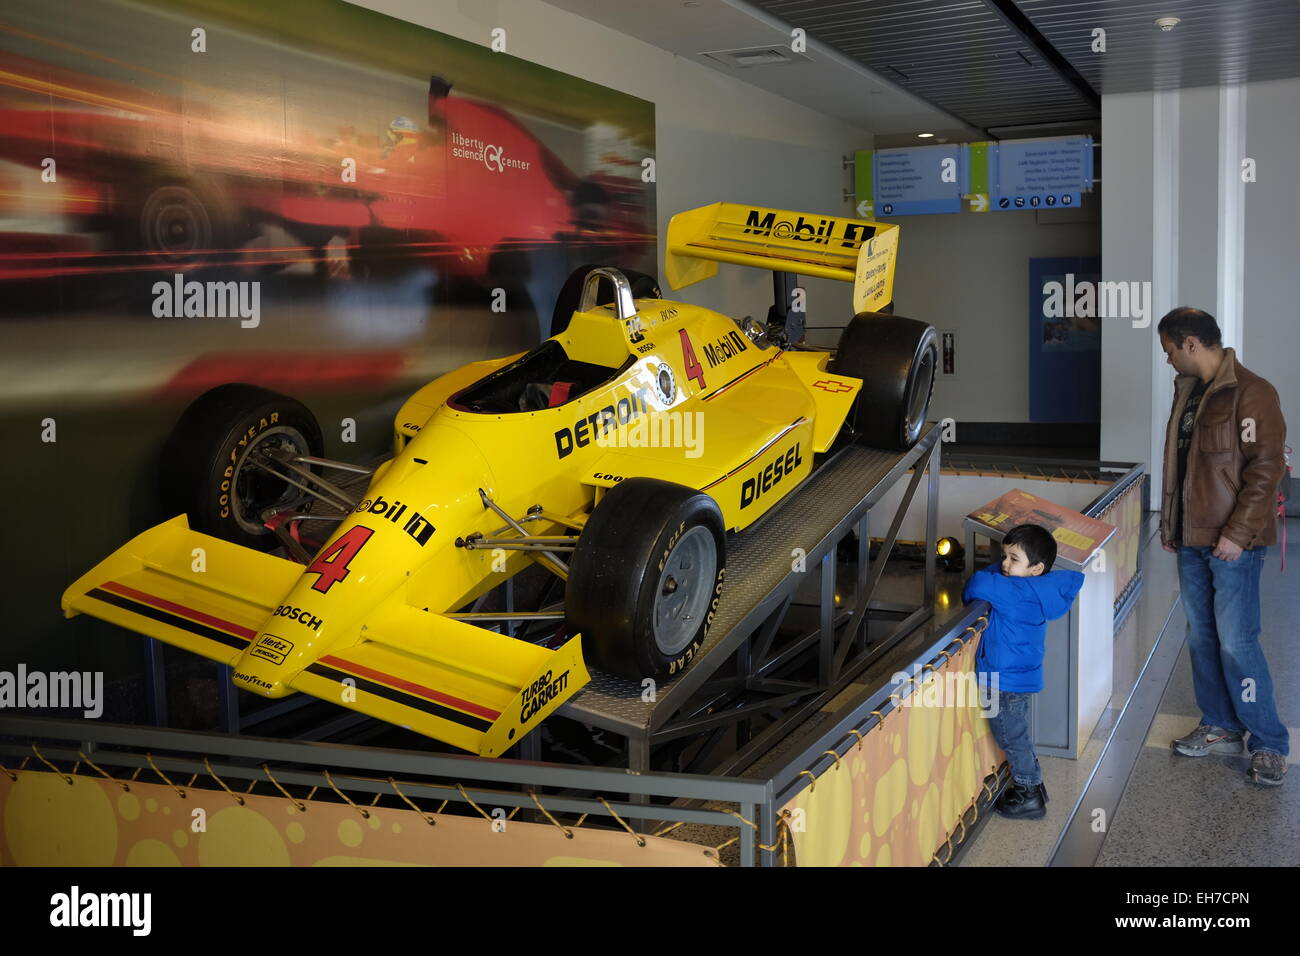 Race car exhibition in Liberty Science Center New Jersey USA Stock Photo